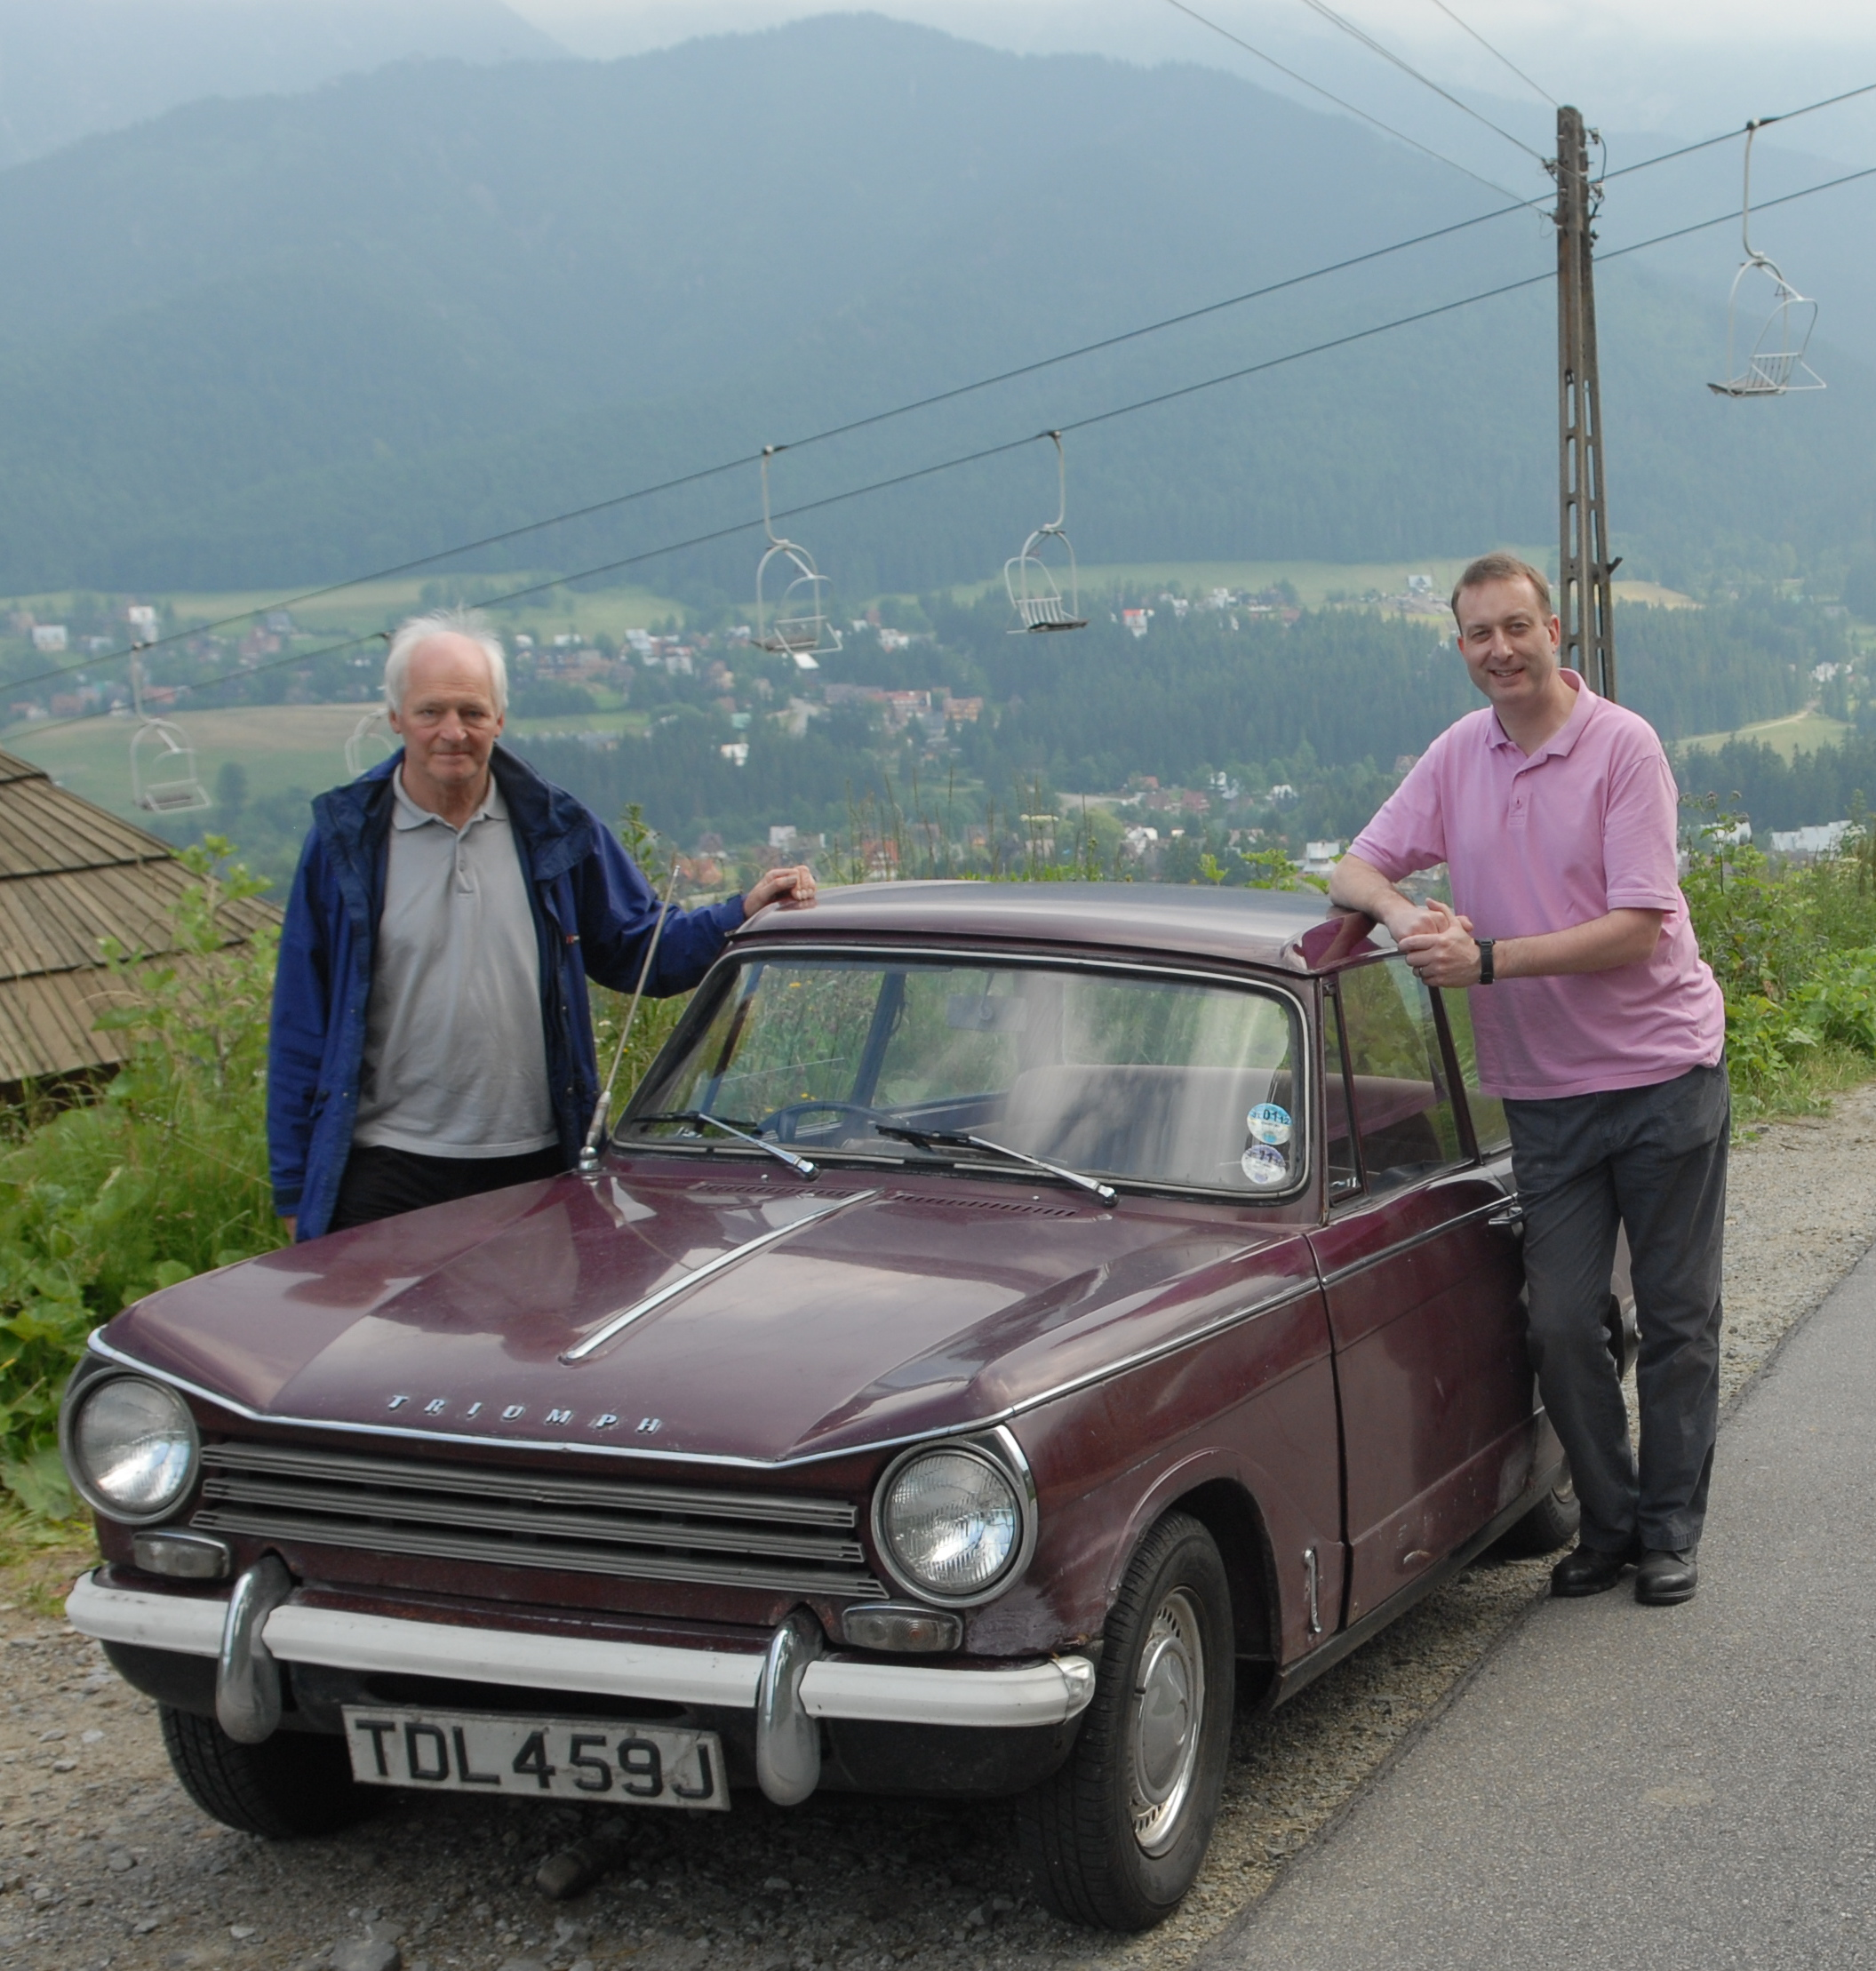 Andrew with a Triumph Herald car